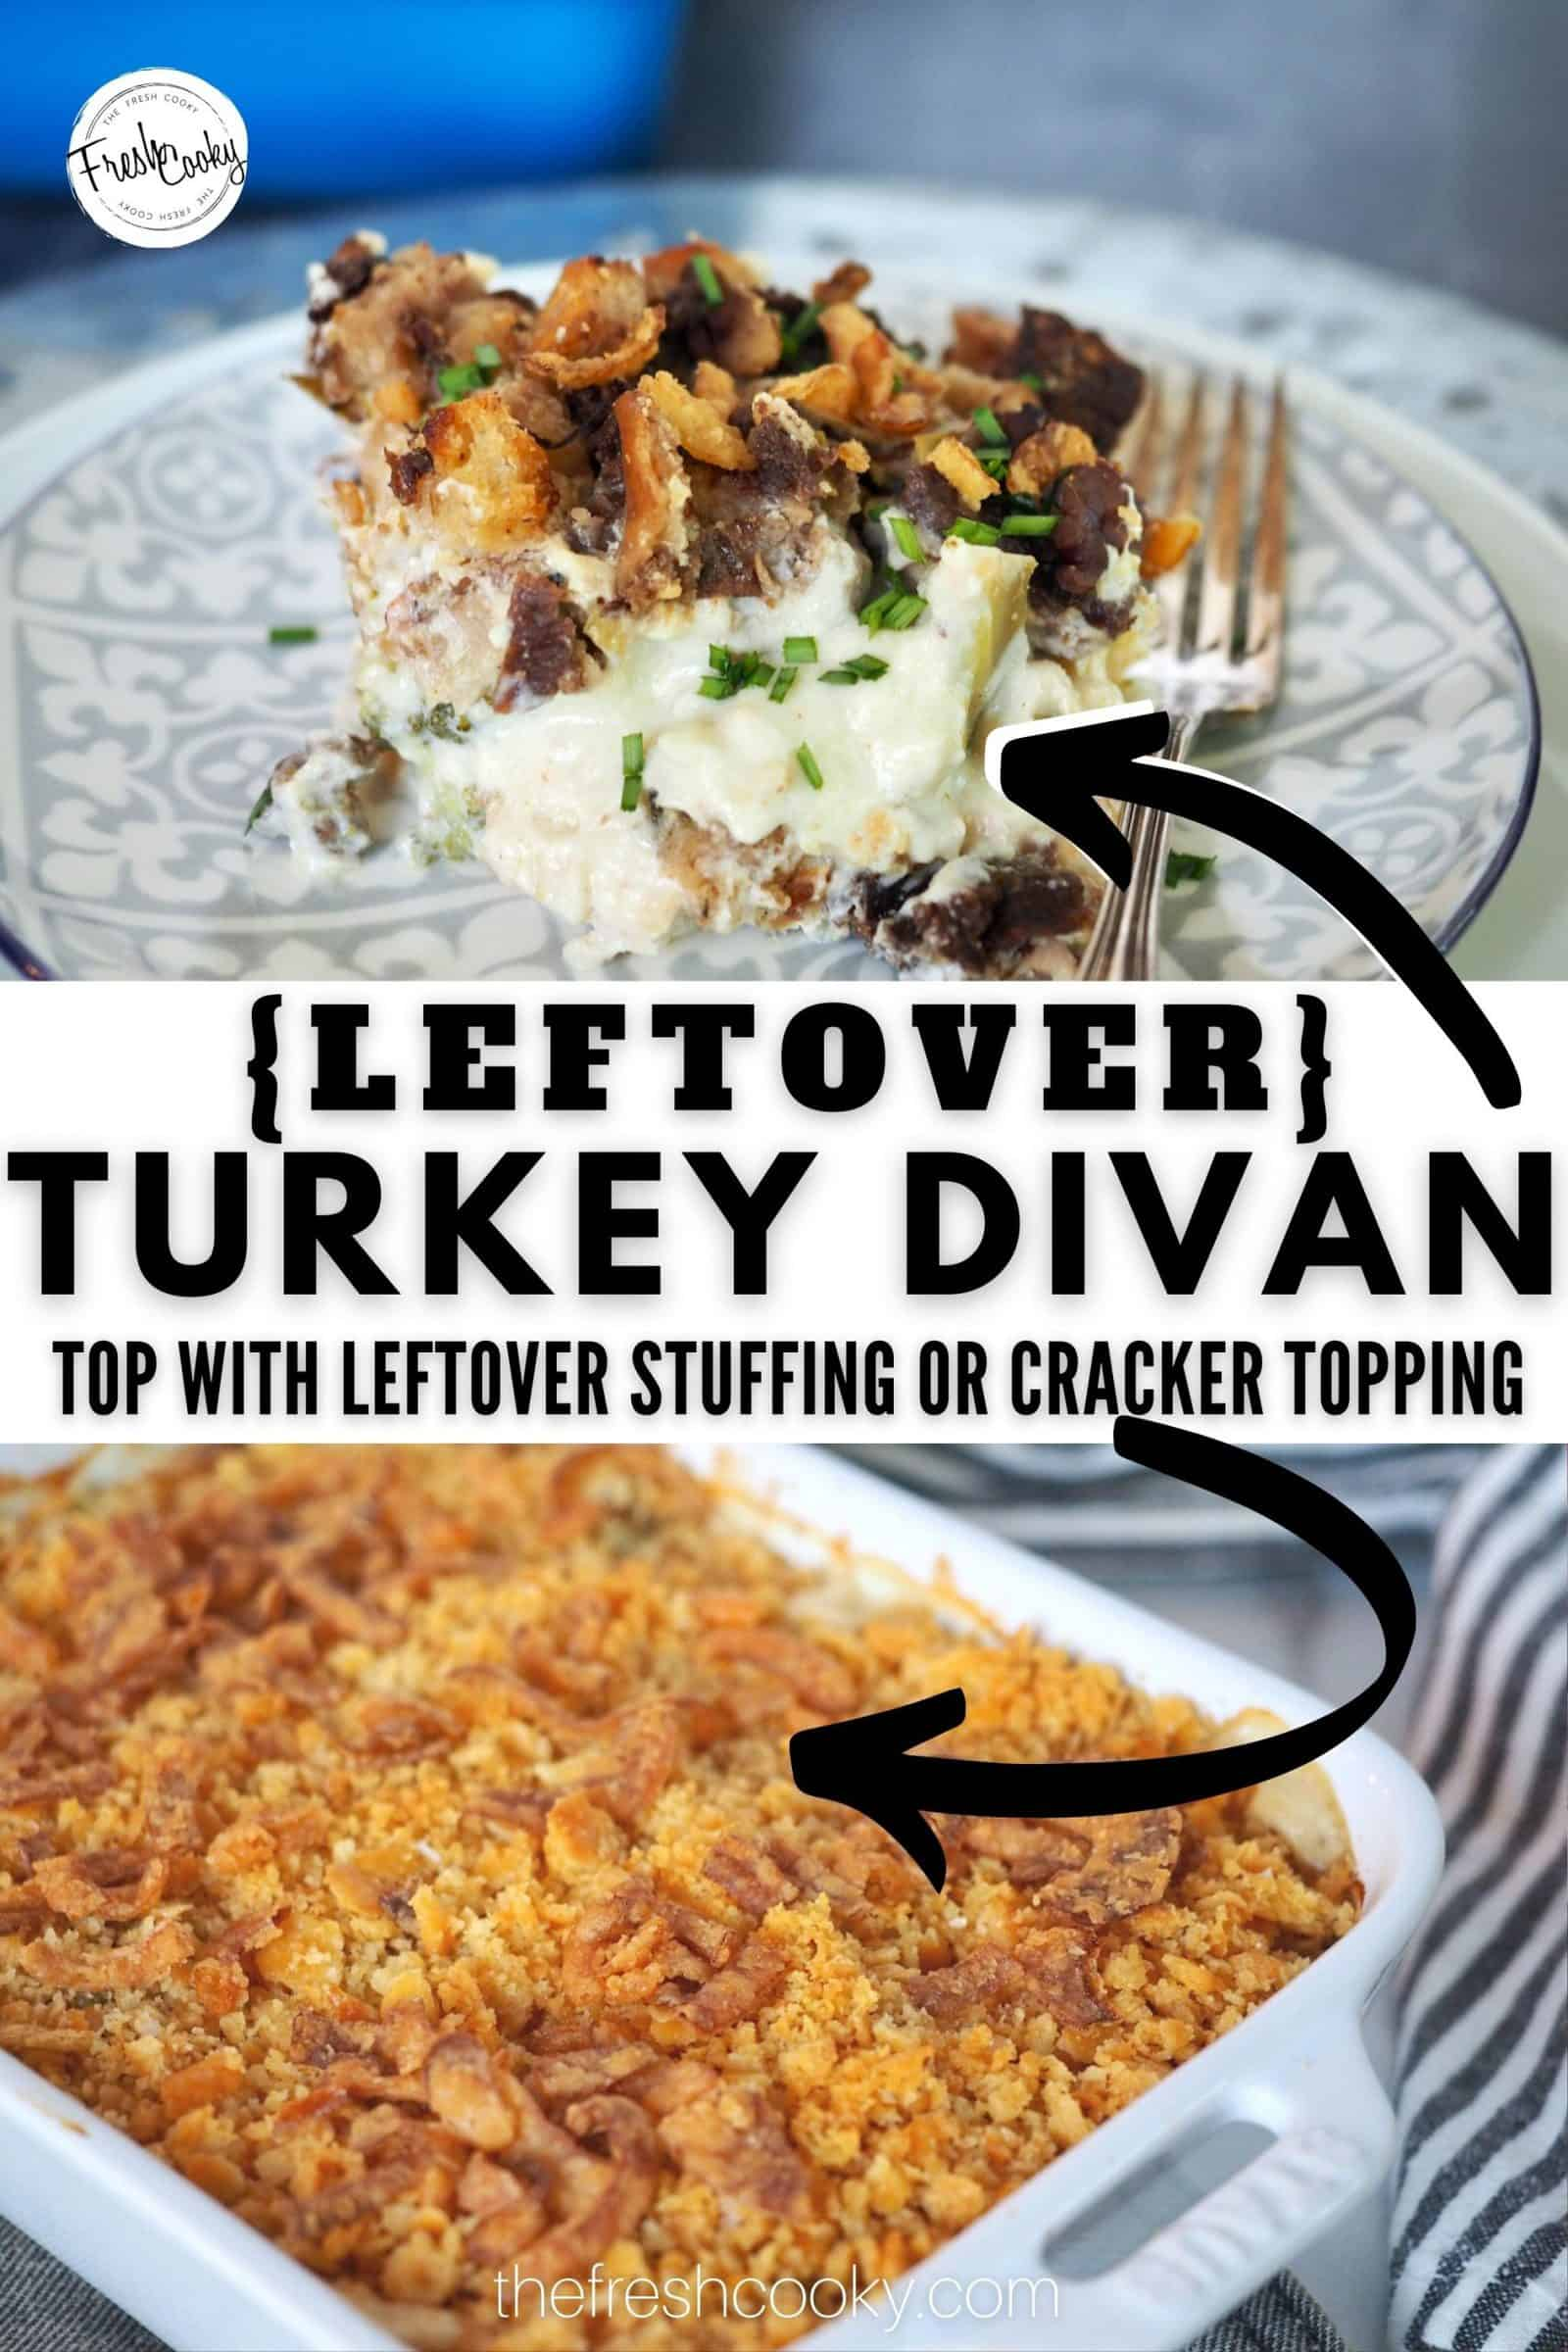 This classic Leftover Turkey Divan is the best way to use leftover turkey or chicken this Thanksgiving or Christmas. Using a traditional mornay cheese sauce, there aren't any canned soups or mayo in this recipe. Comfort food casserole at it's finest! Uses leftover stuffing as the topping with crunch fried onions. #leftoverturkeyrecipes #bestturkeydivan #thefreshcooky via @thefreshcooky